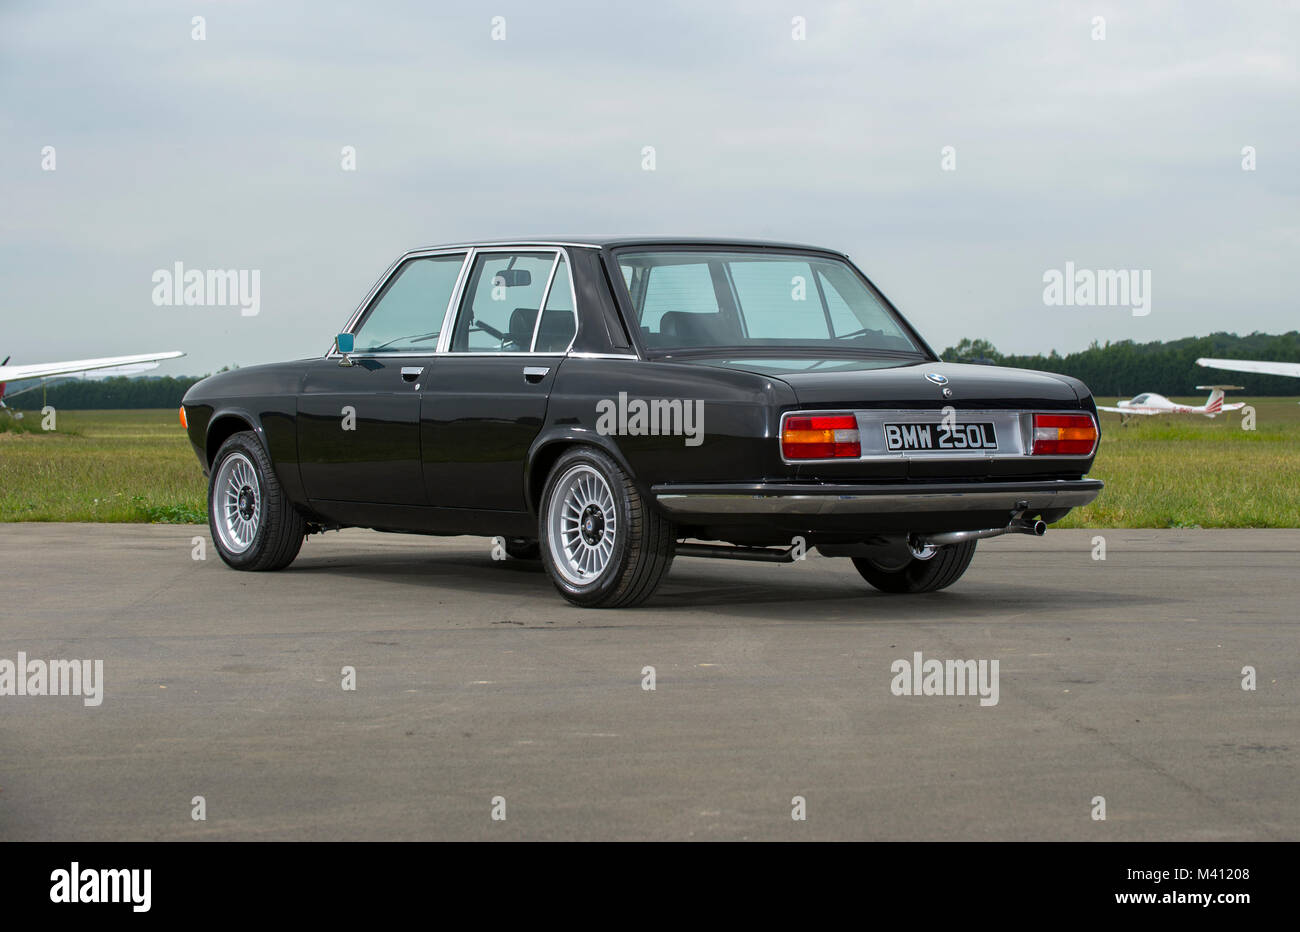 Bmw 3 0 Cs E3 New Six Classic German Sports Coupe Stock Photo